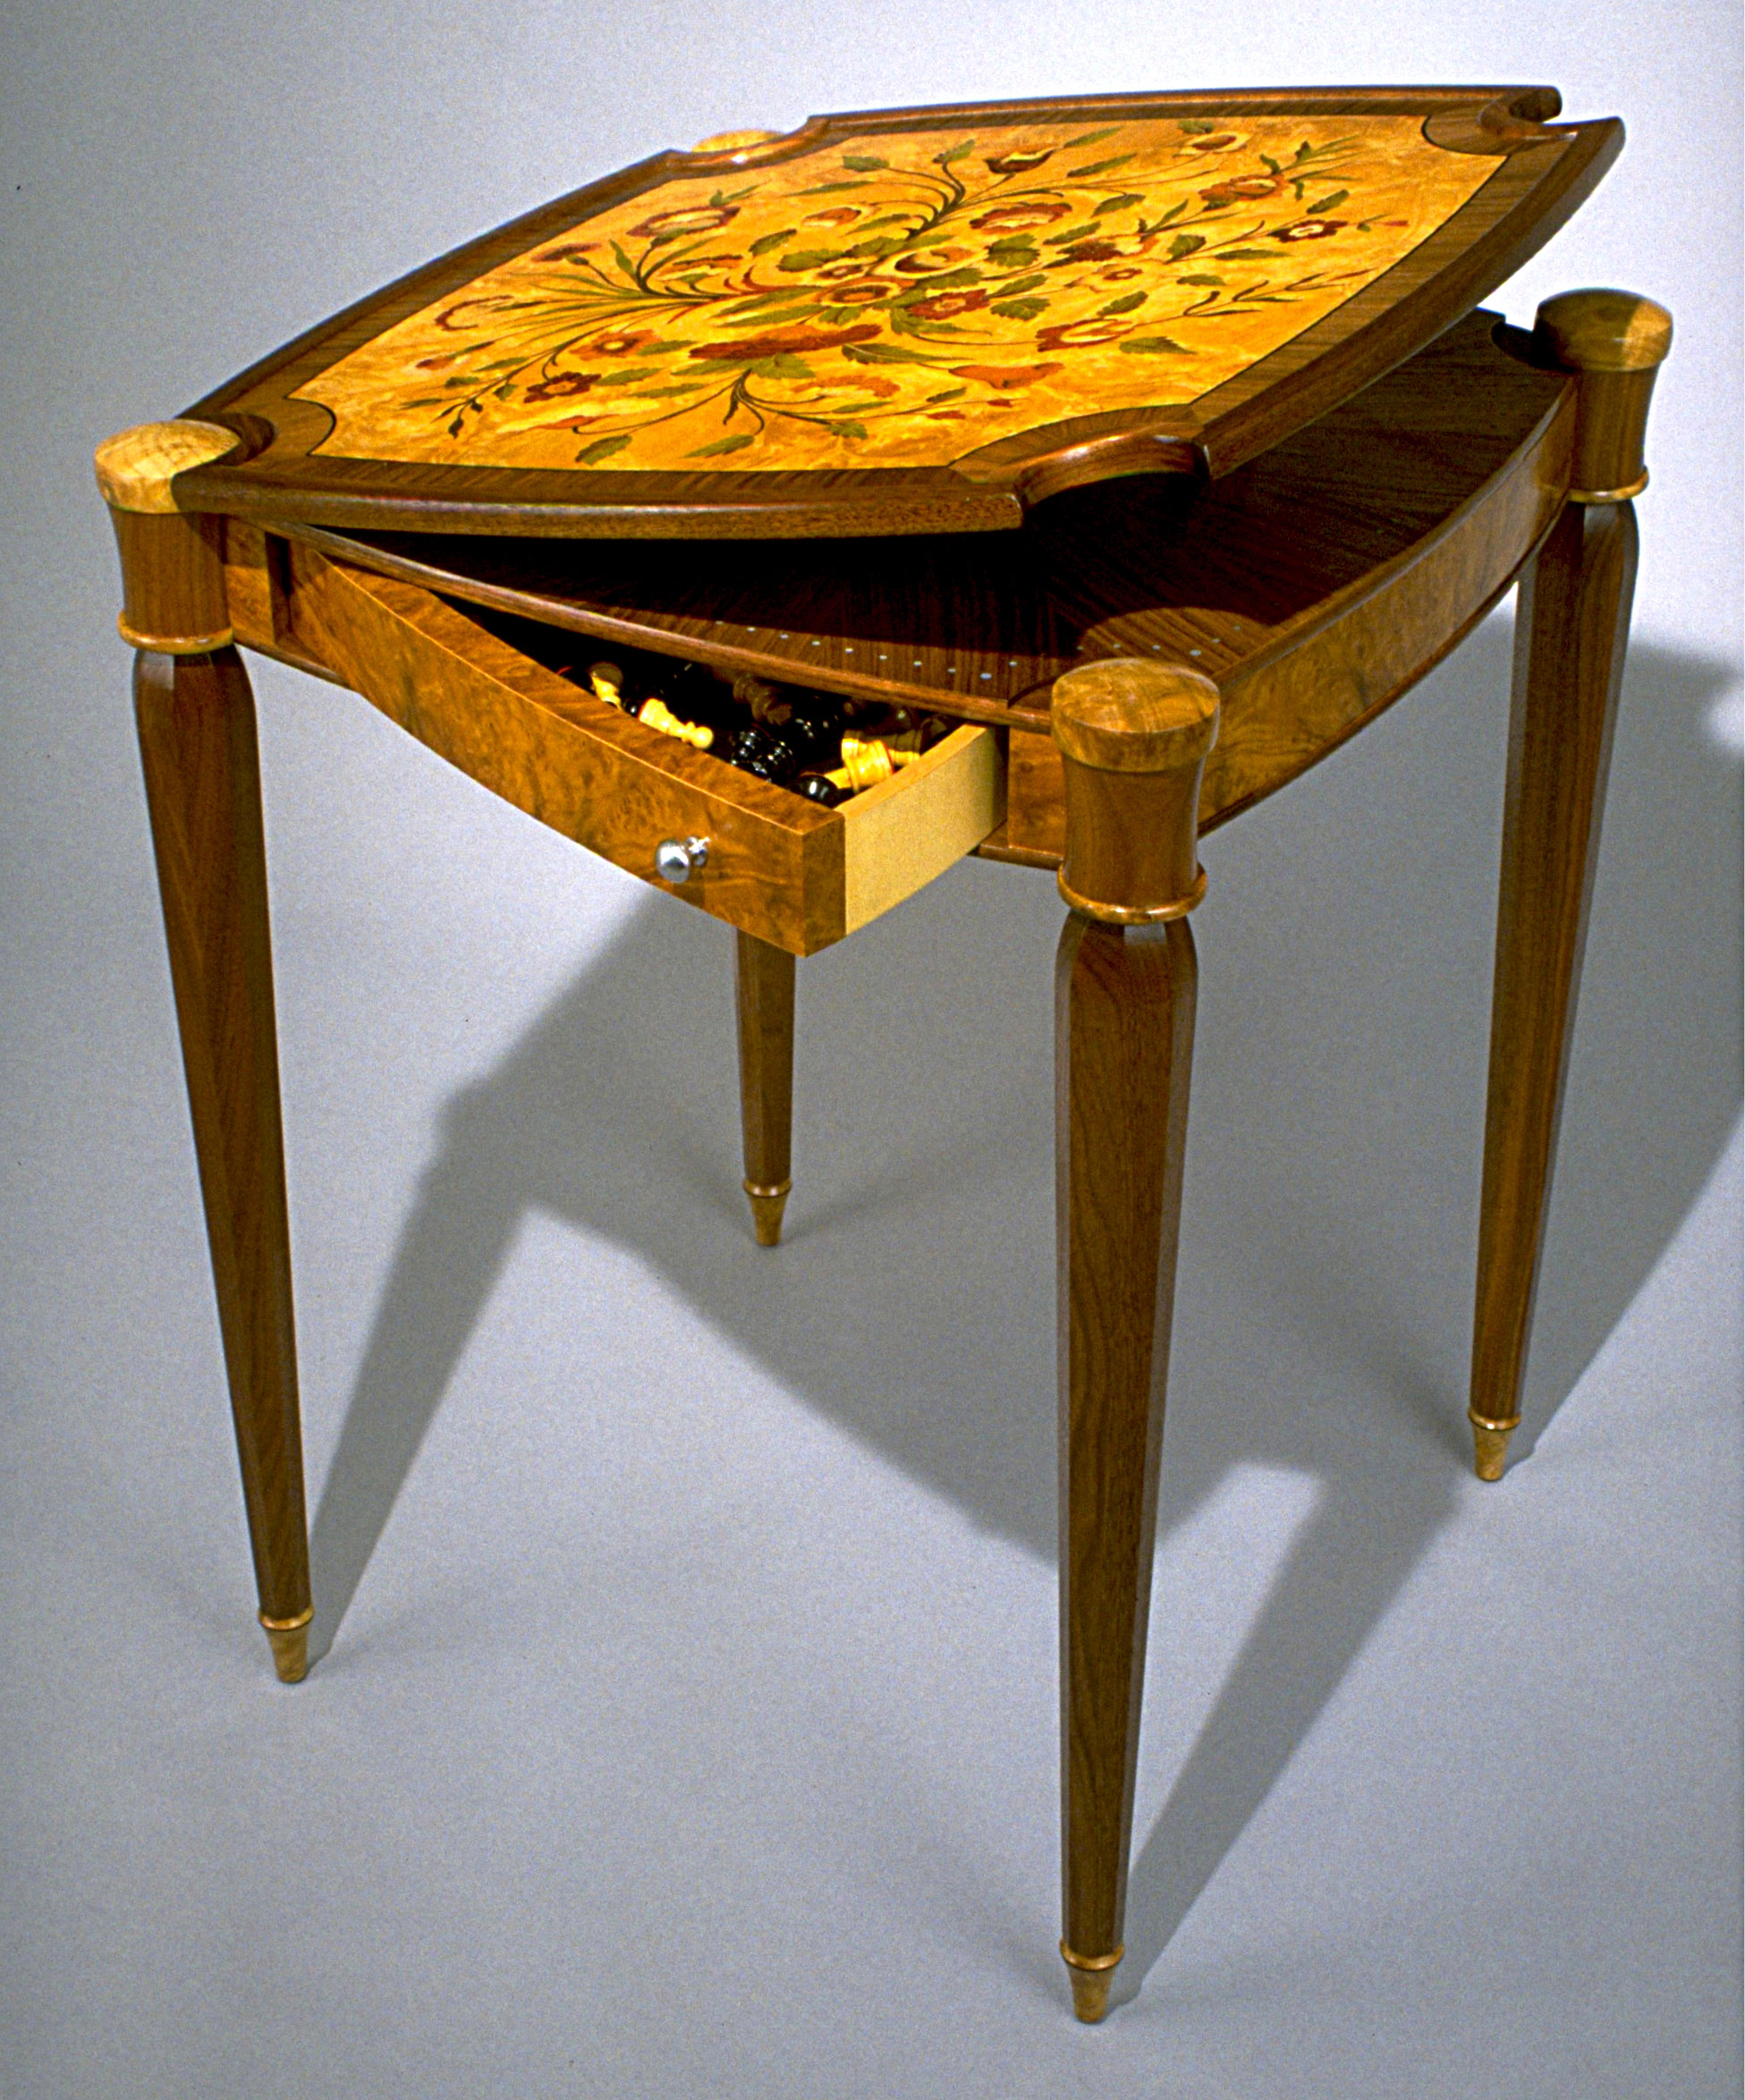 19. Small Game Table